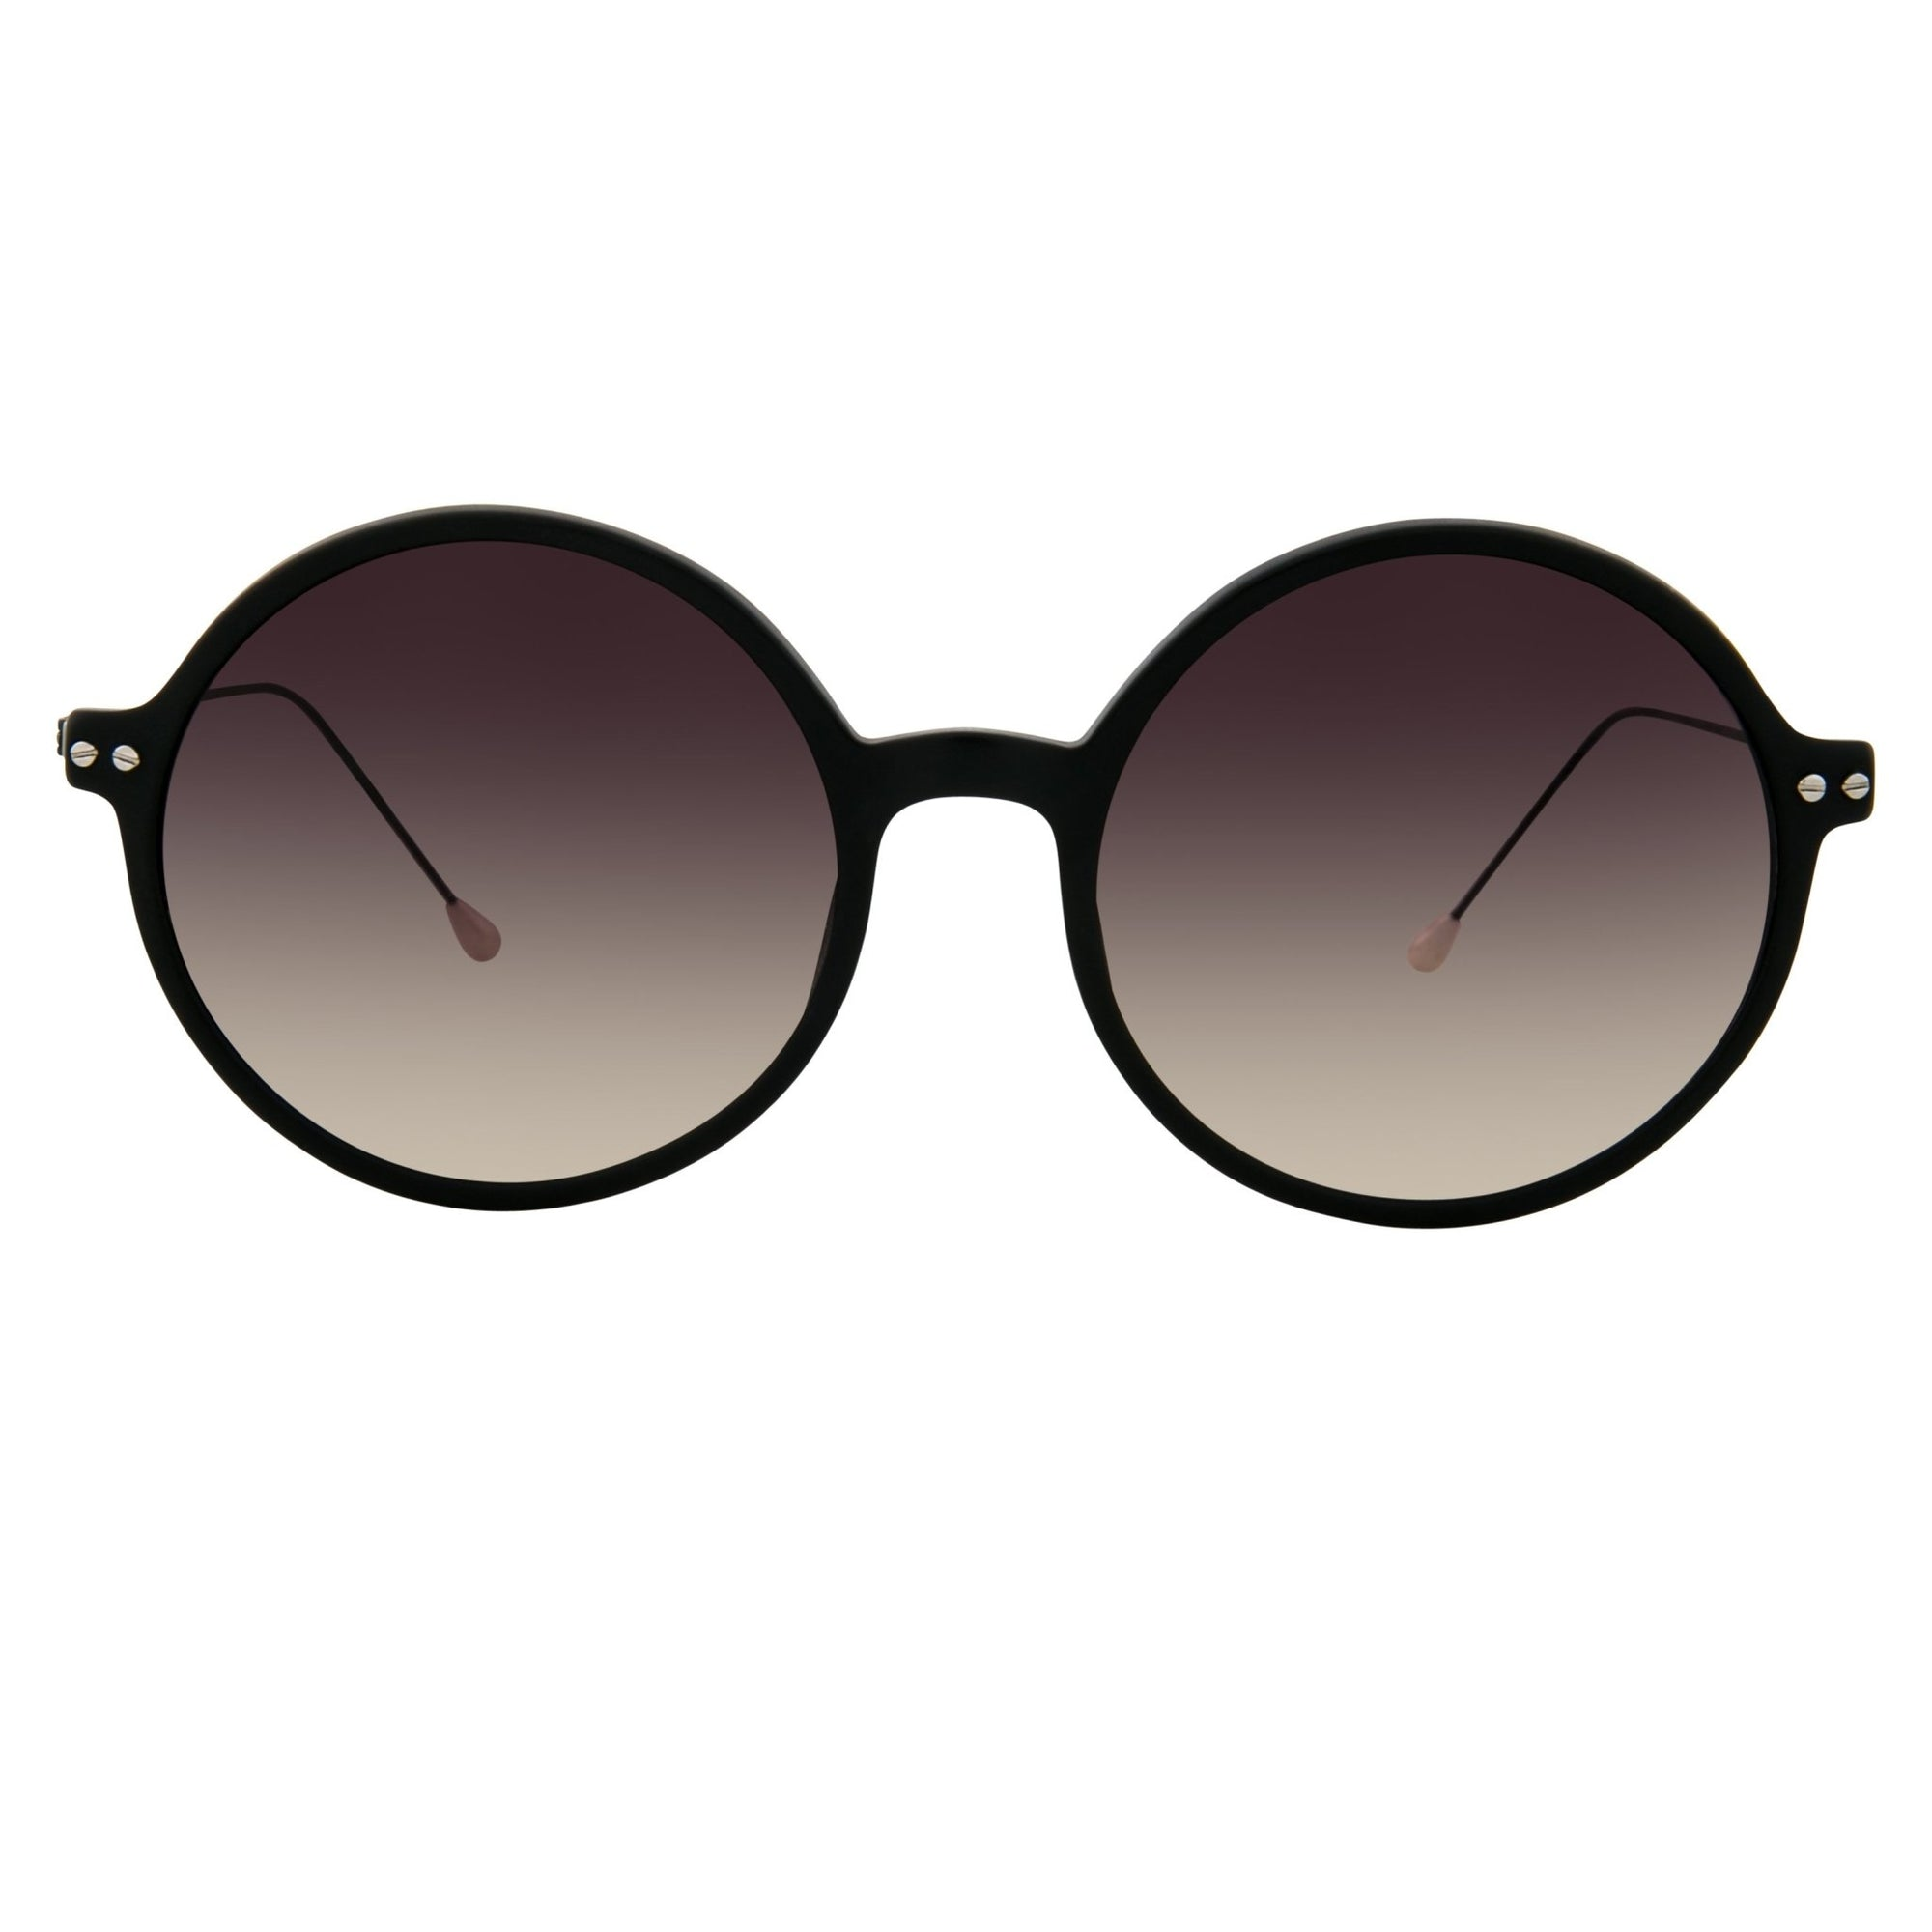 Ann Demeulemeester Sunglasses Round Matte Black 925 Silver with Grey Graduated Lenses CAT3 AD54C3SUN - Watches & Crystals